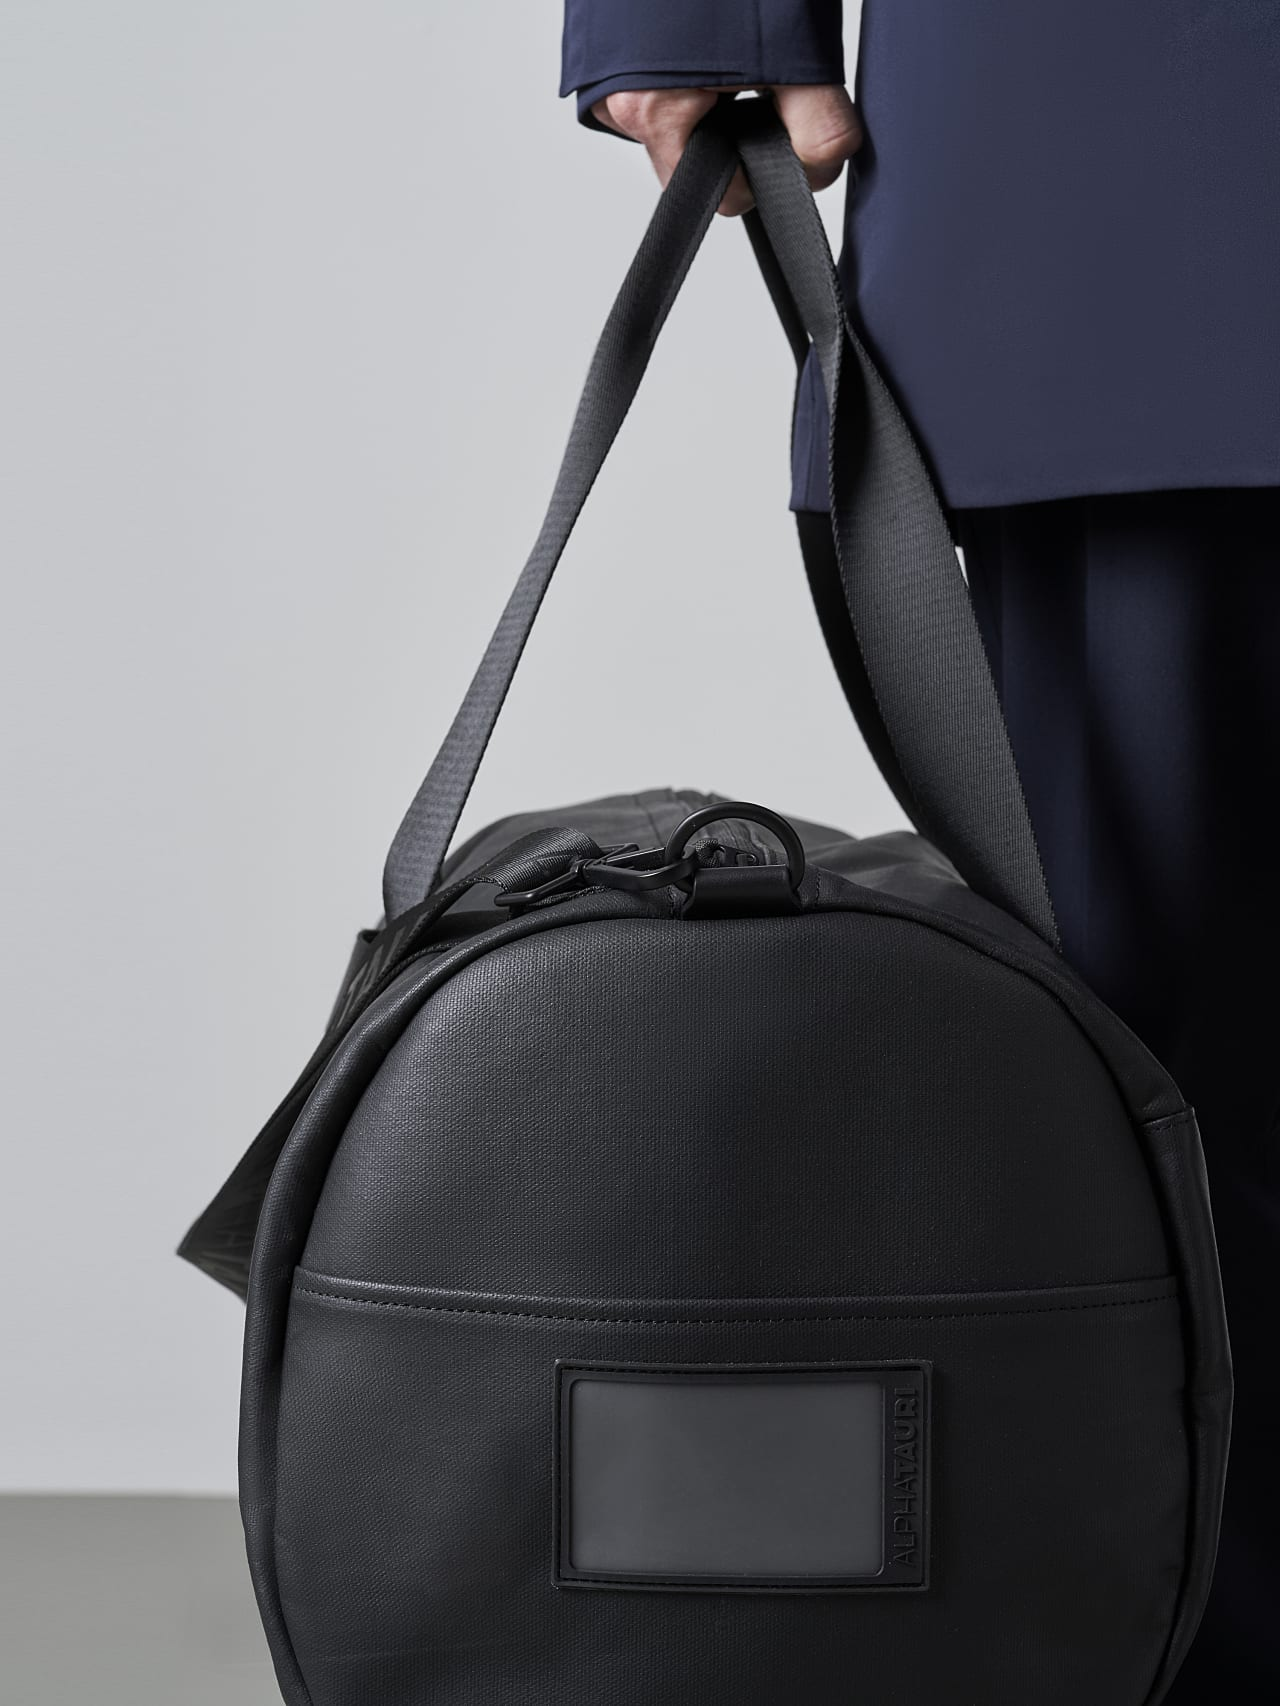 AWEE V4.Y5.02 Water-Repellent Duffle Bag dark grey / anthracite Front Alpha Tauri